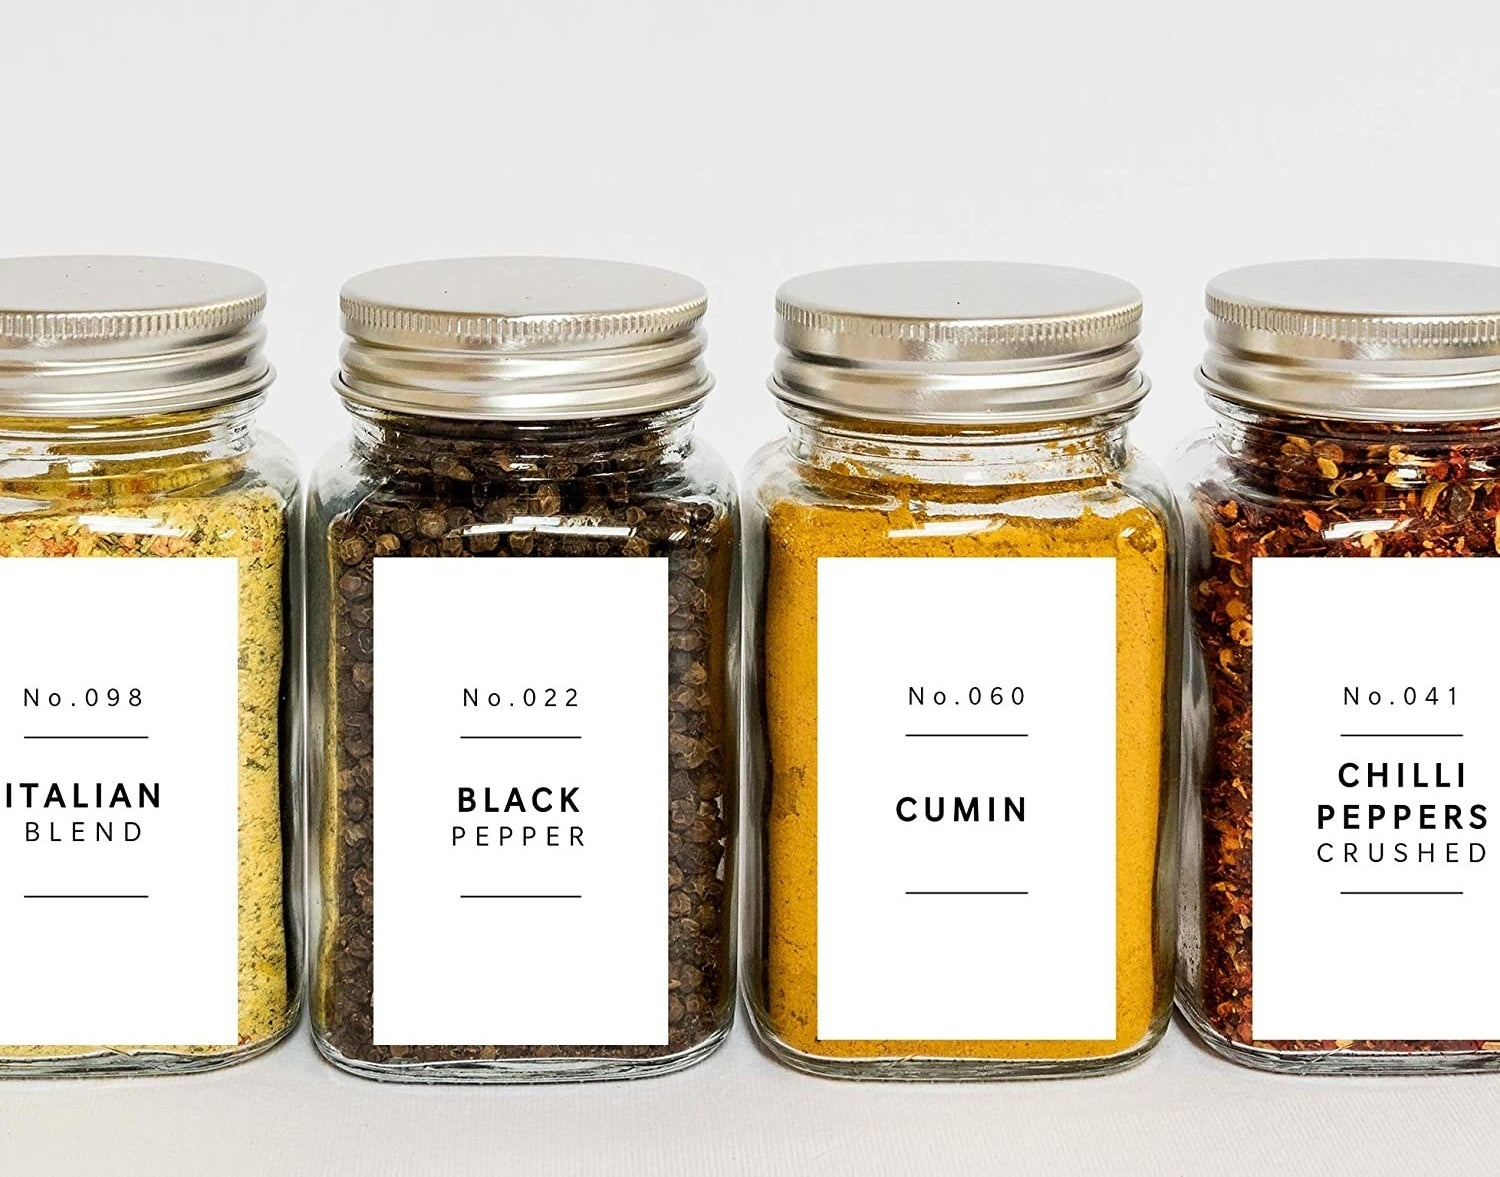 A set of spice jars with neat minimalist labels on the front